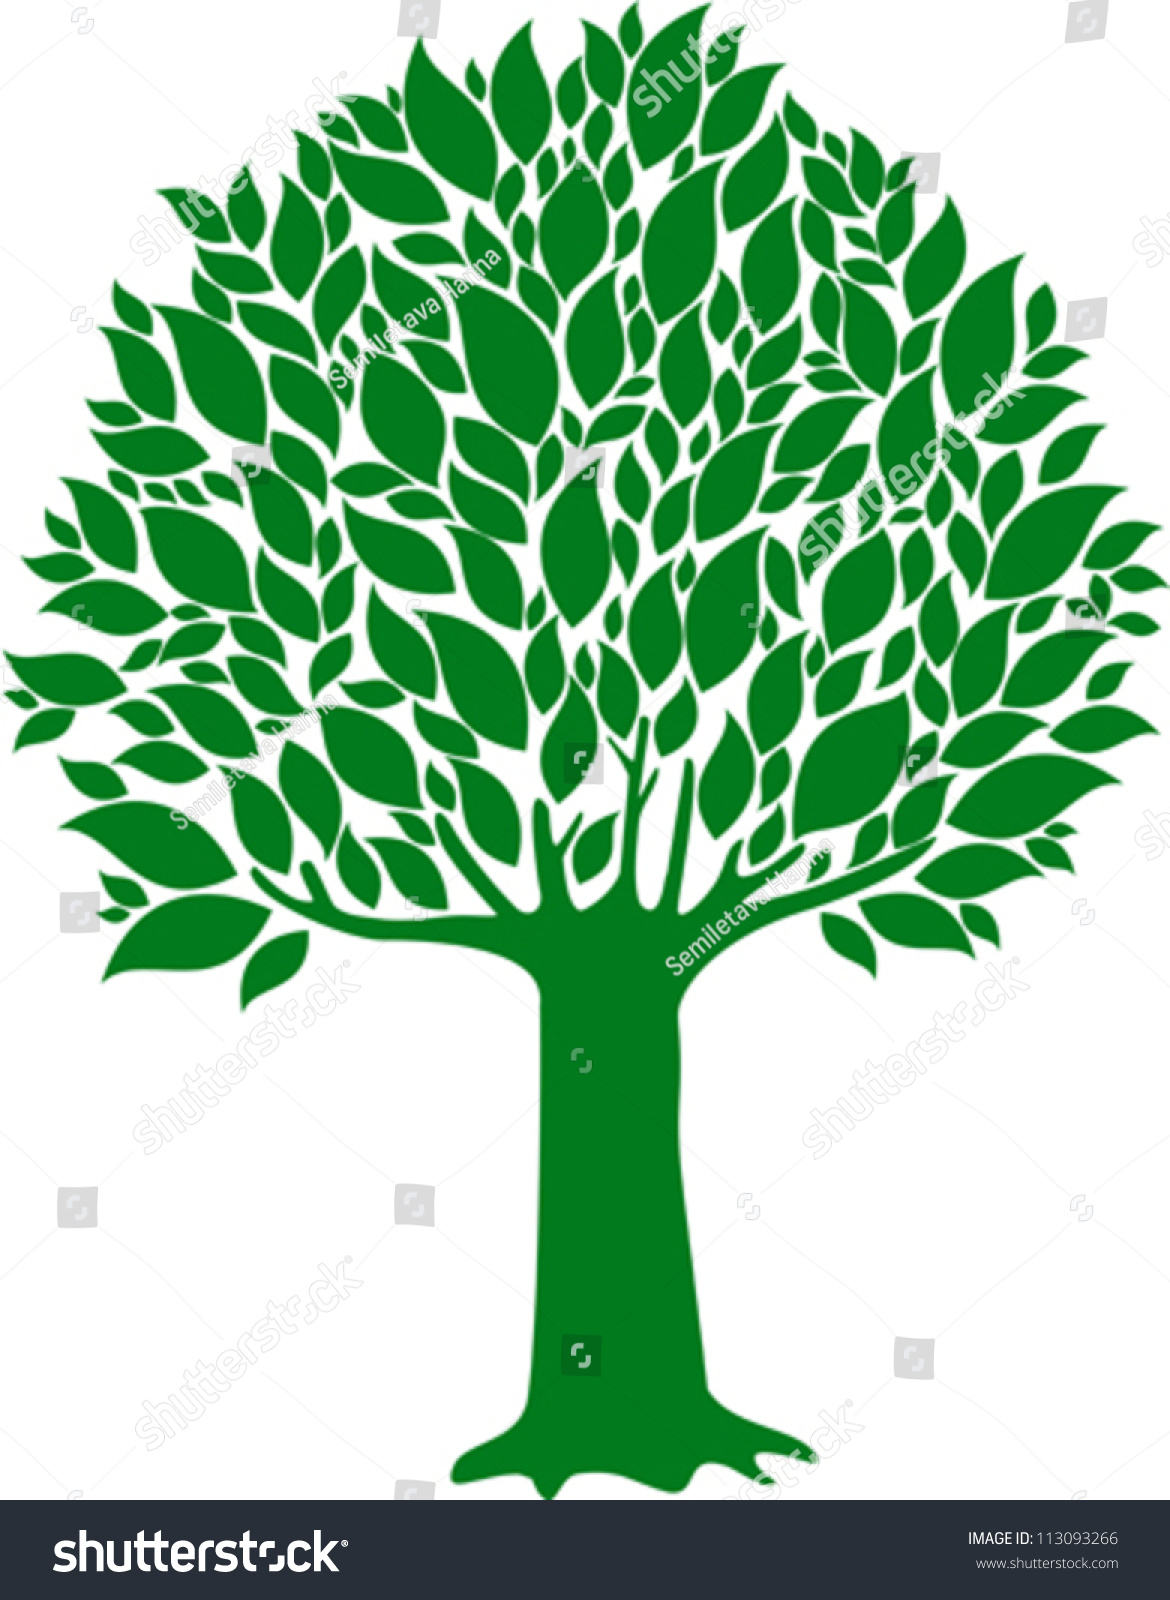 Vector Illustration Tree: Green Tree Isolated On White Background Stock Vector